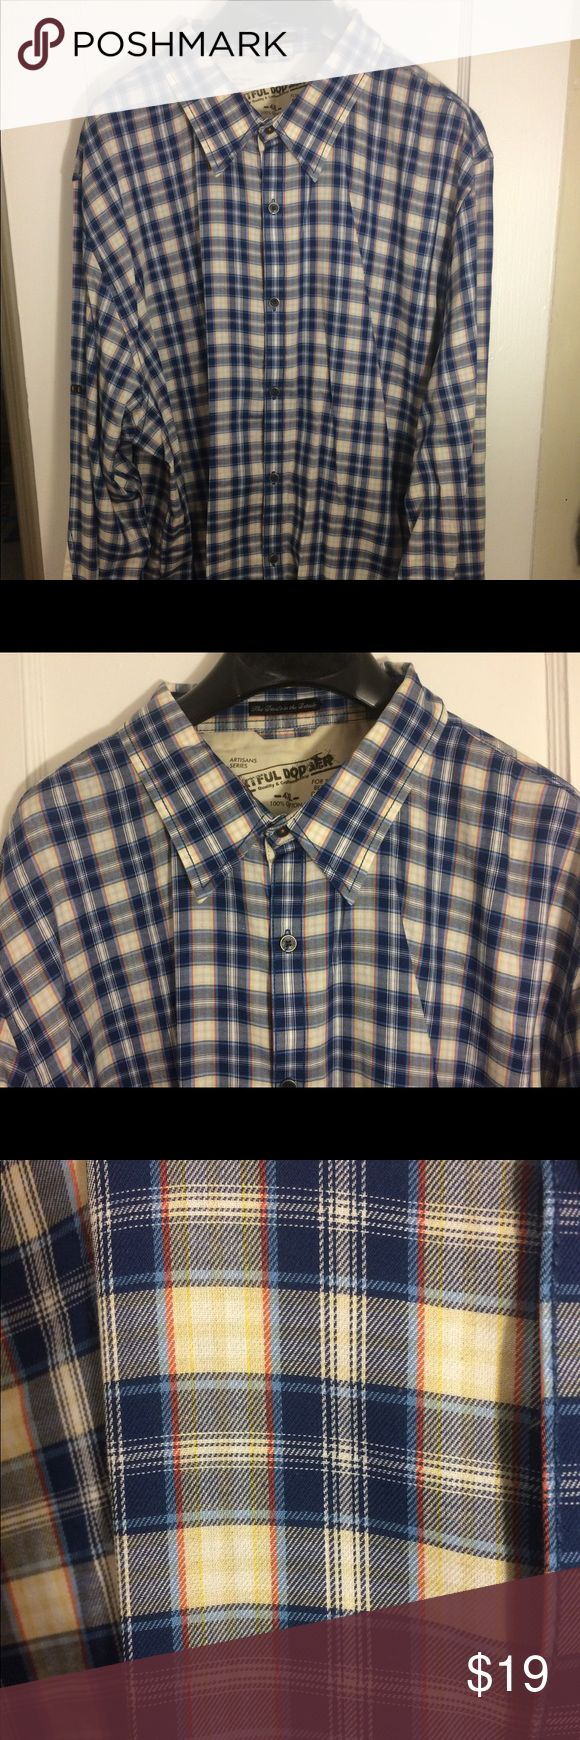 Artful Dodger button down shirt 4XL Artful Dodger blue plaid button down shirt. Size 4XL. Back of shirt elbows has off white patches  (Fits like 3XL ) Length from top of collar to bottom of shirt is 34'. Chest from armpit to armpit 26' Artful Dodger Shirts Dress Shirts